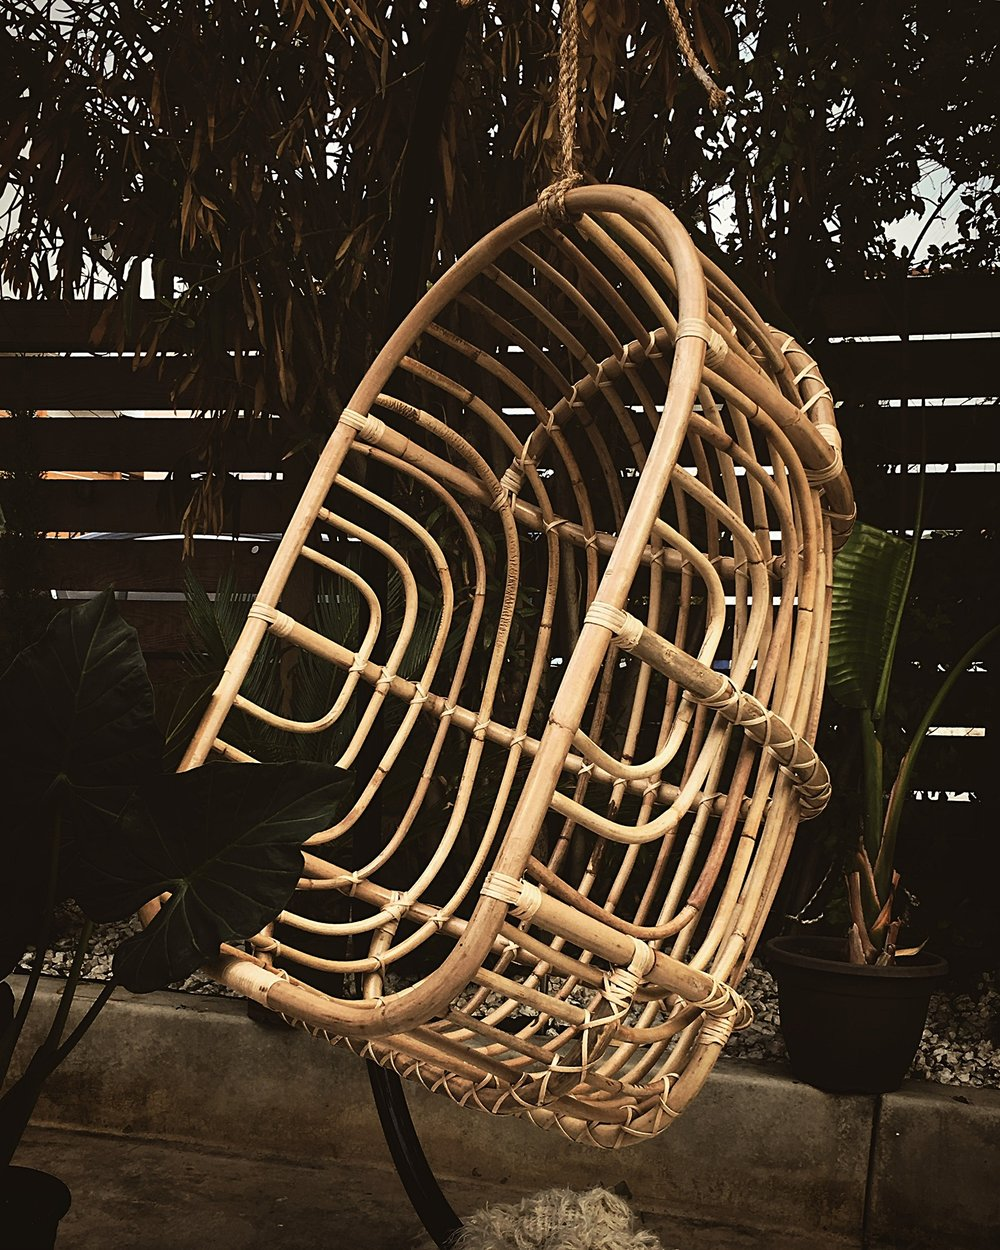 SHOP HANDMADE FURNITURE - Pictured: Our Nest Hanging Chair